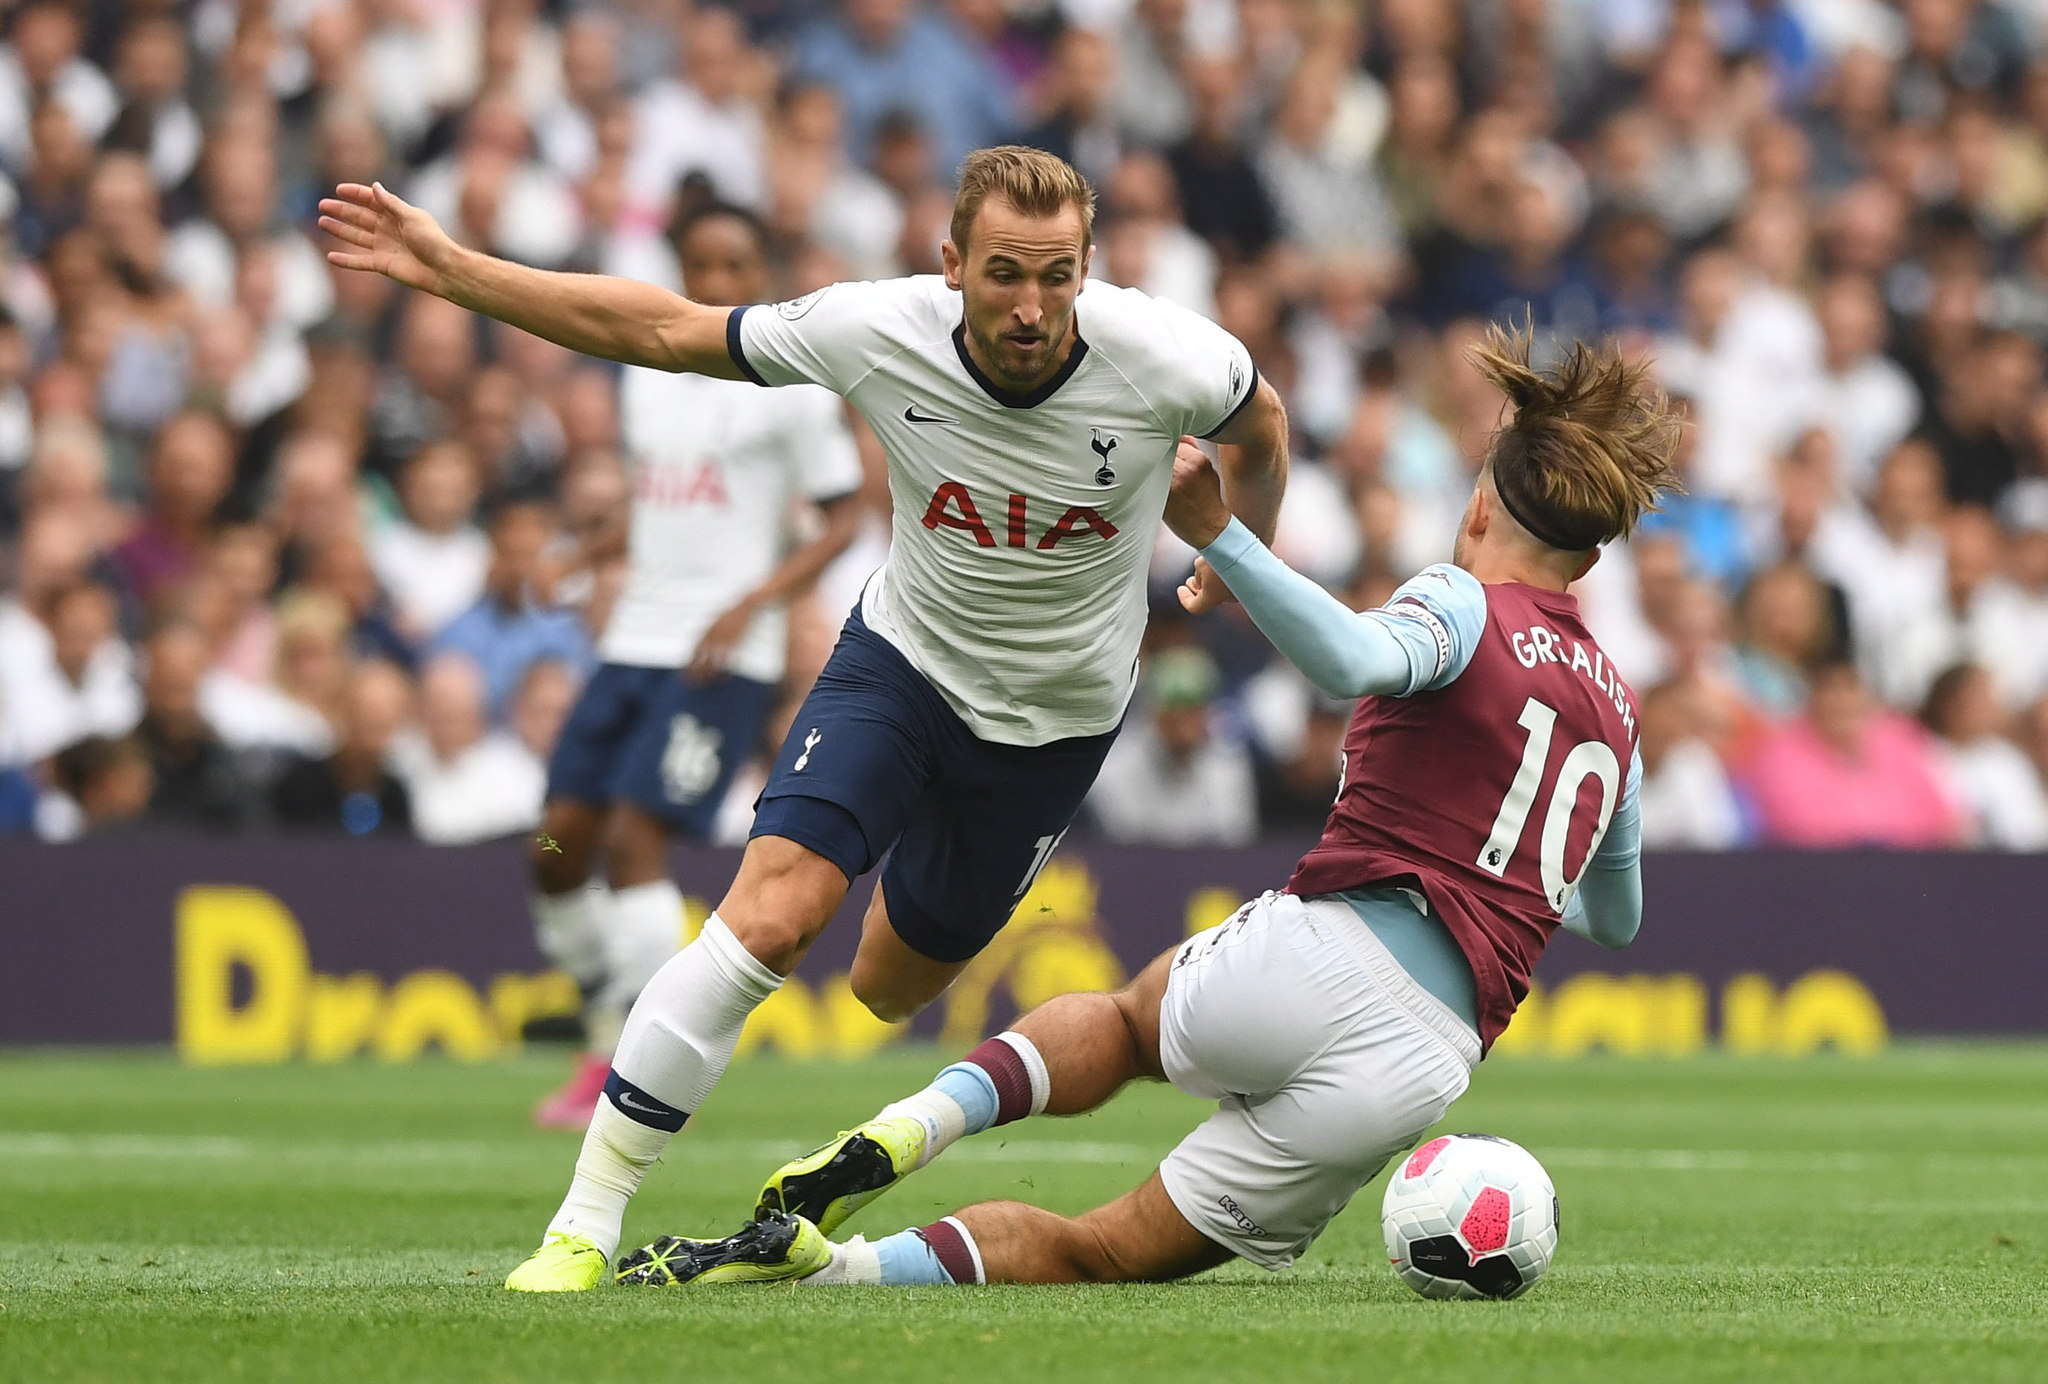 London (United Kingdom), 10/08/2019.- Tottenham Hotspurs Harry Kane (L) and Aston Villas Jack <HIT>Grealish</HIT> (R) in action during the English Premier League soccer match between Tottenham Hotspur and Aston Villa at the Tottenham Hotspur Stadium in London, Britain, 10 August 2019. (Reino Unido, Londres) EFE/EPA/NEIL HALL EDITORIAL USE ONLY. No use with unauthorized audio, video, data, fixture lists, club/league logos or live services. Online in-match use limited to 120 images, no video emulation. No use in betting, games or single club/league/player publications